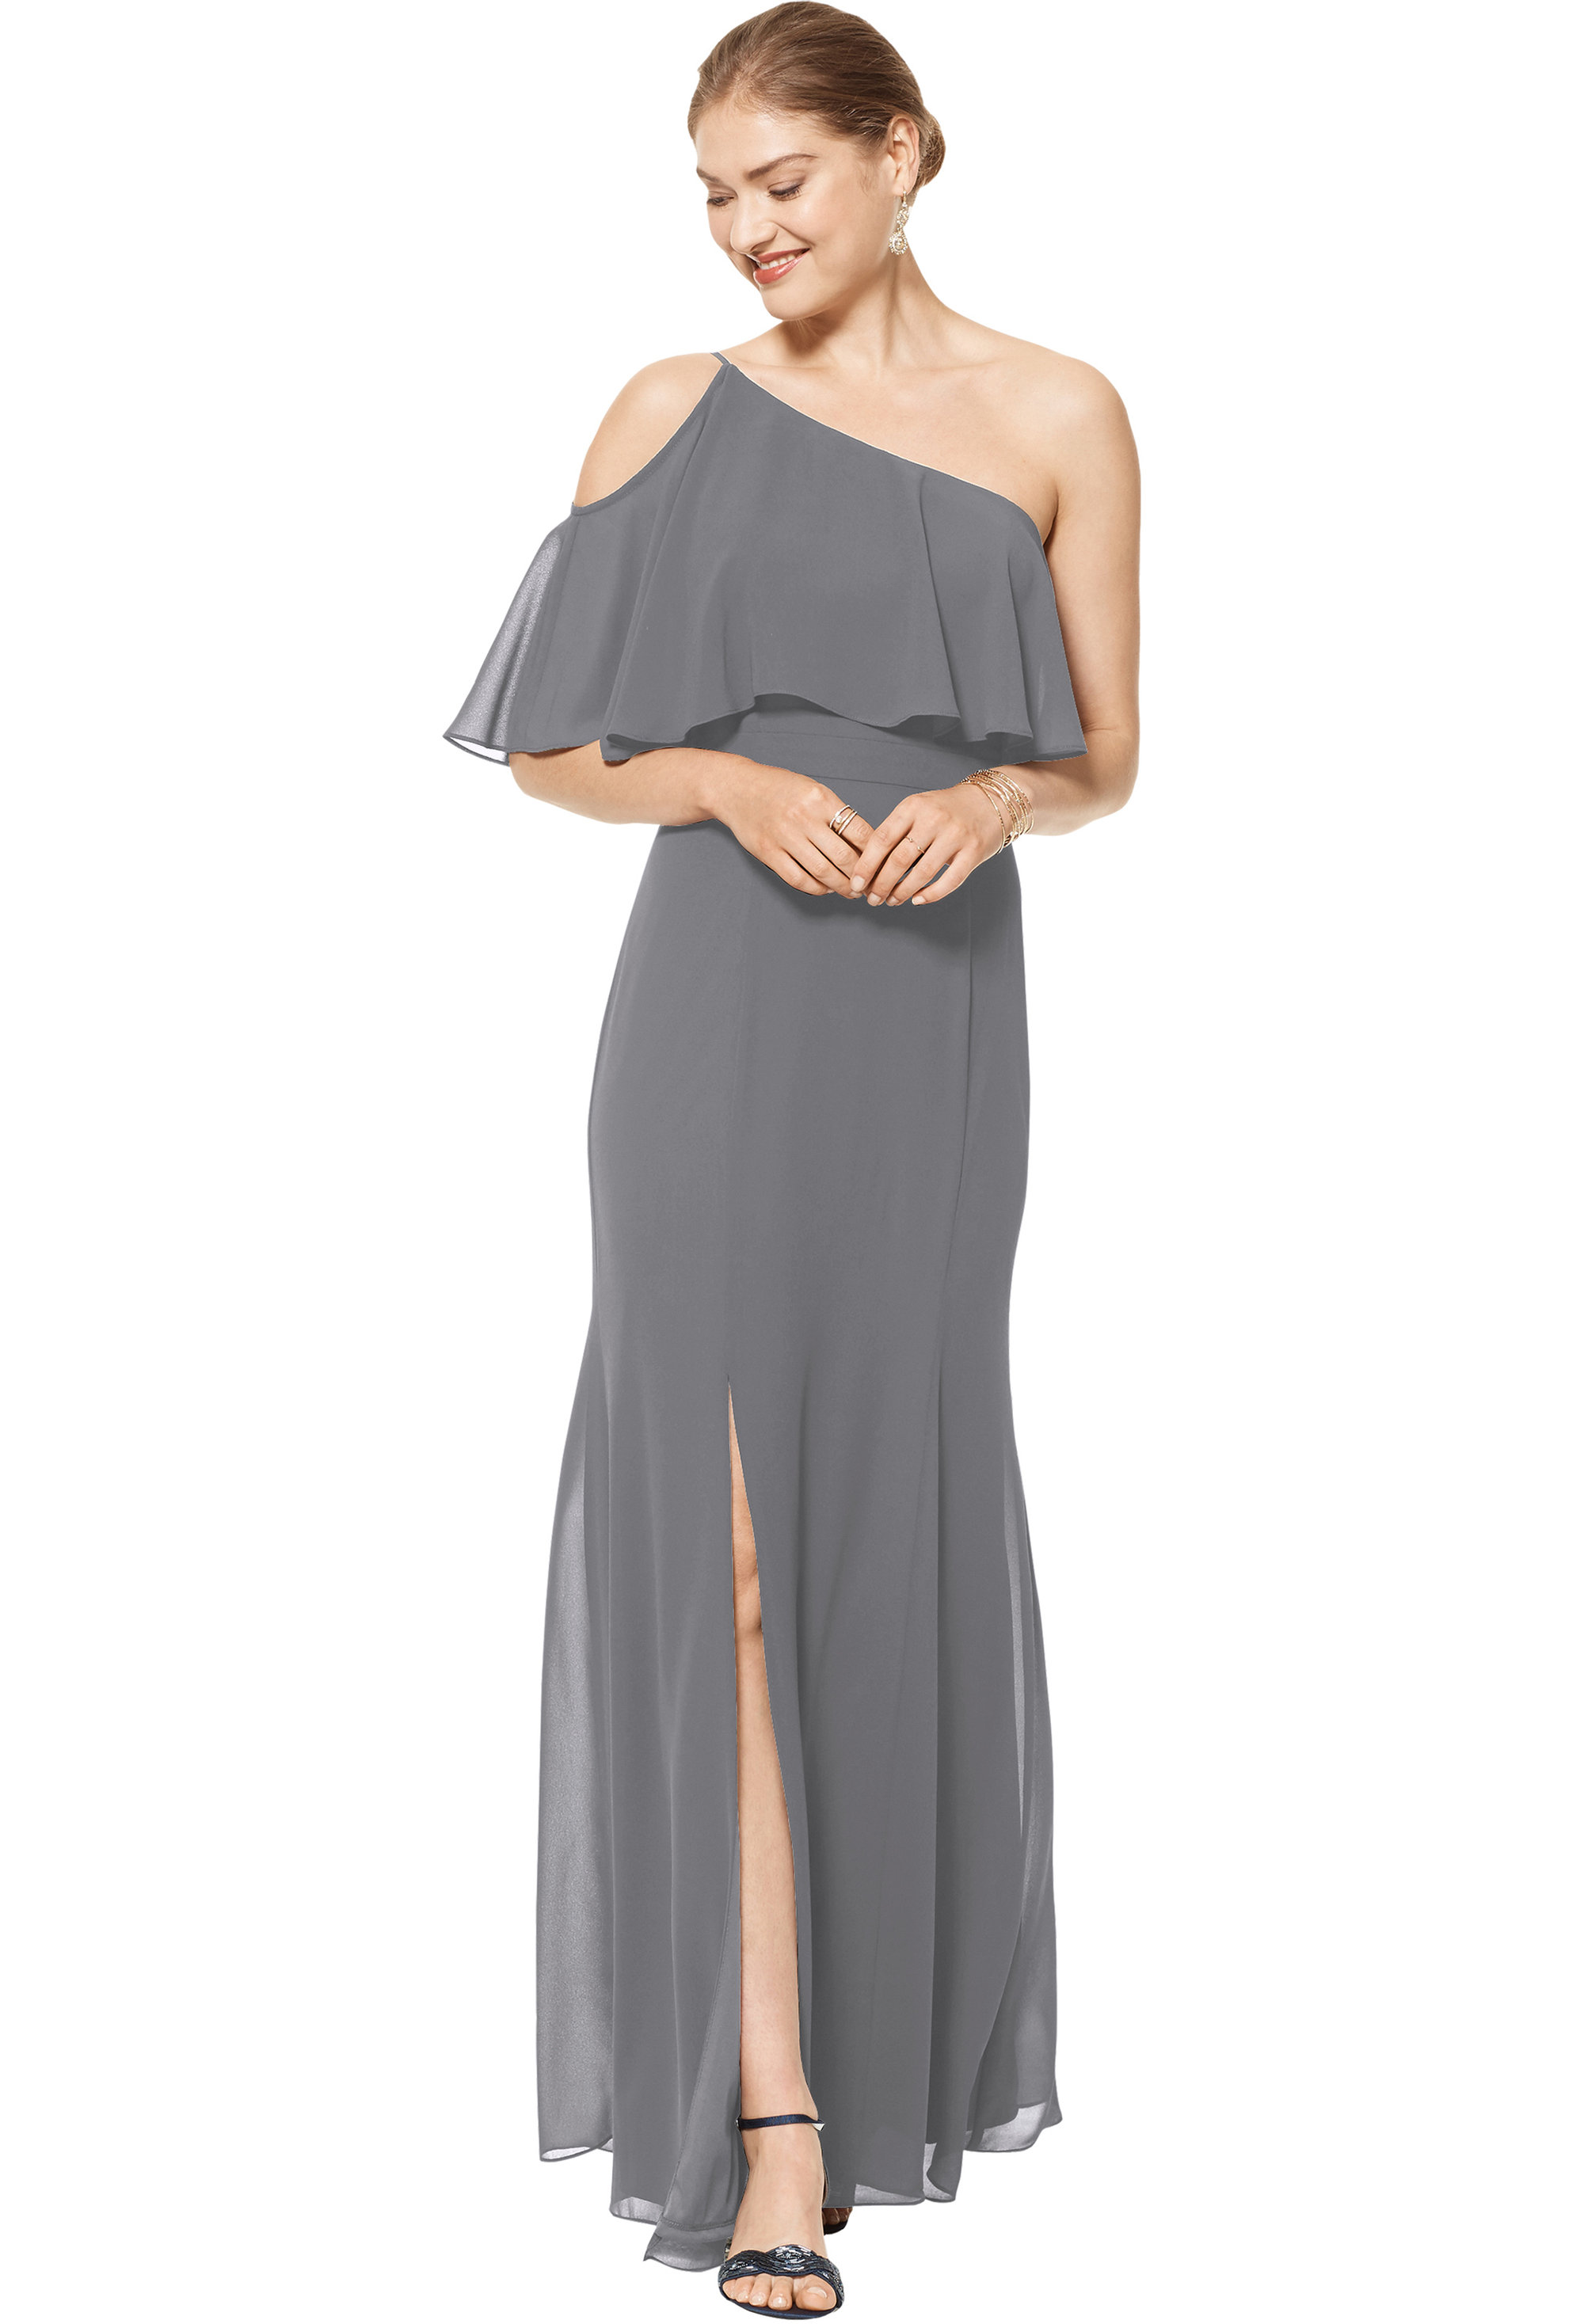 Bill Levkoff PEWTER Chiffon One Shoulder Floor Length gown, $158.00 Front